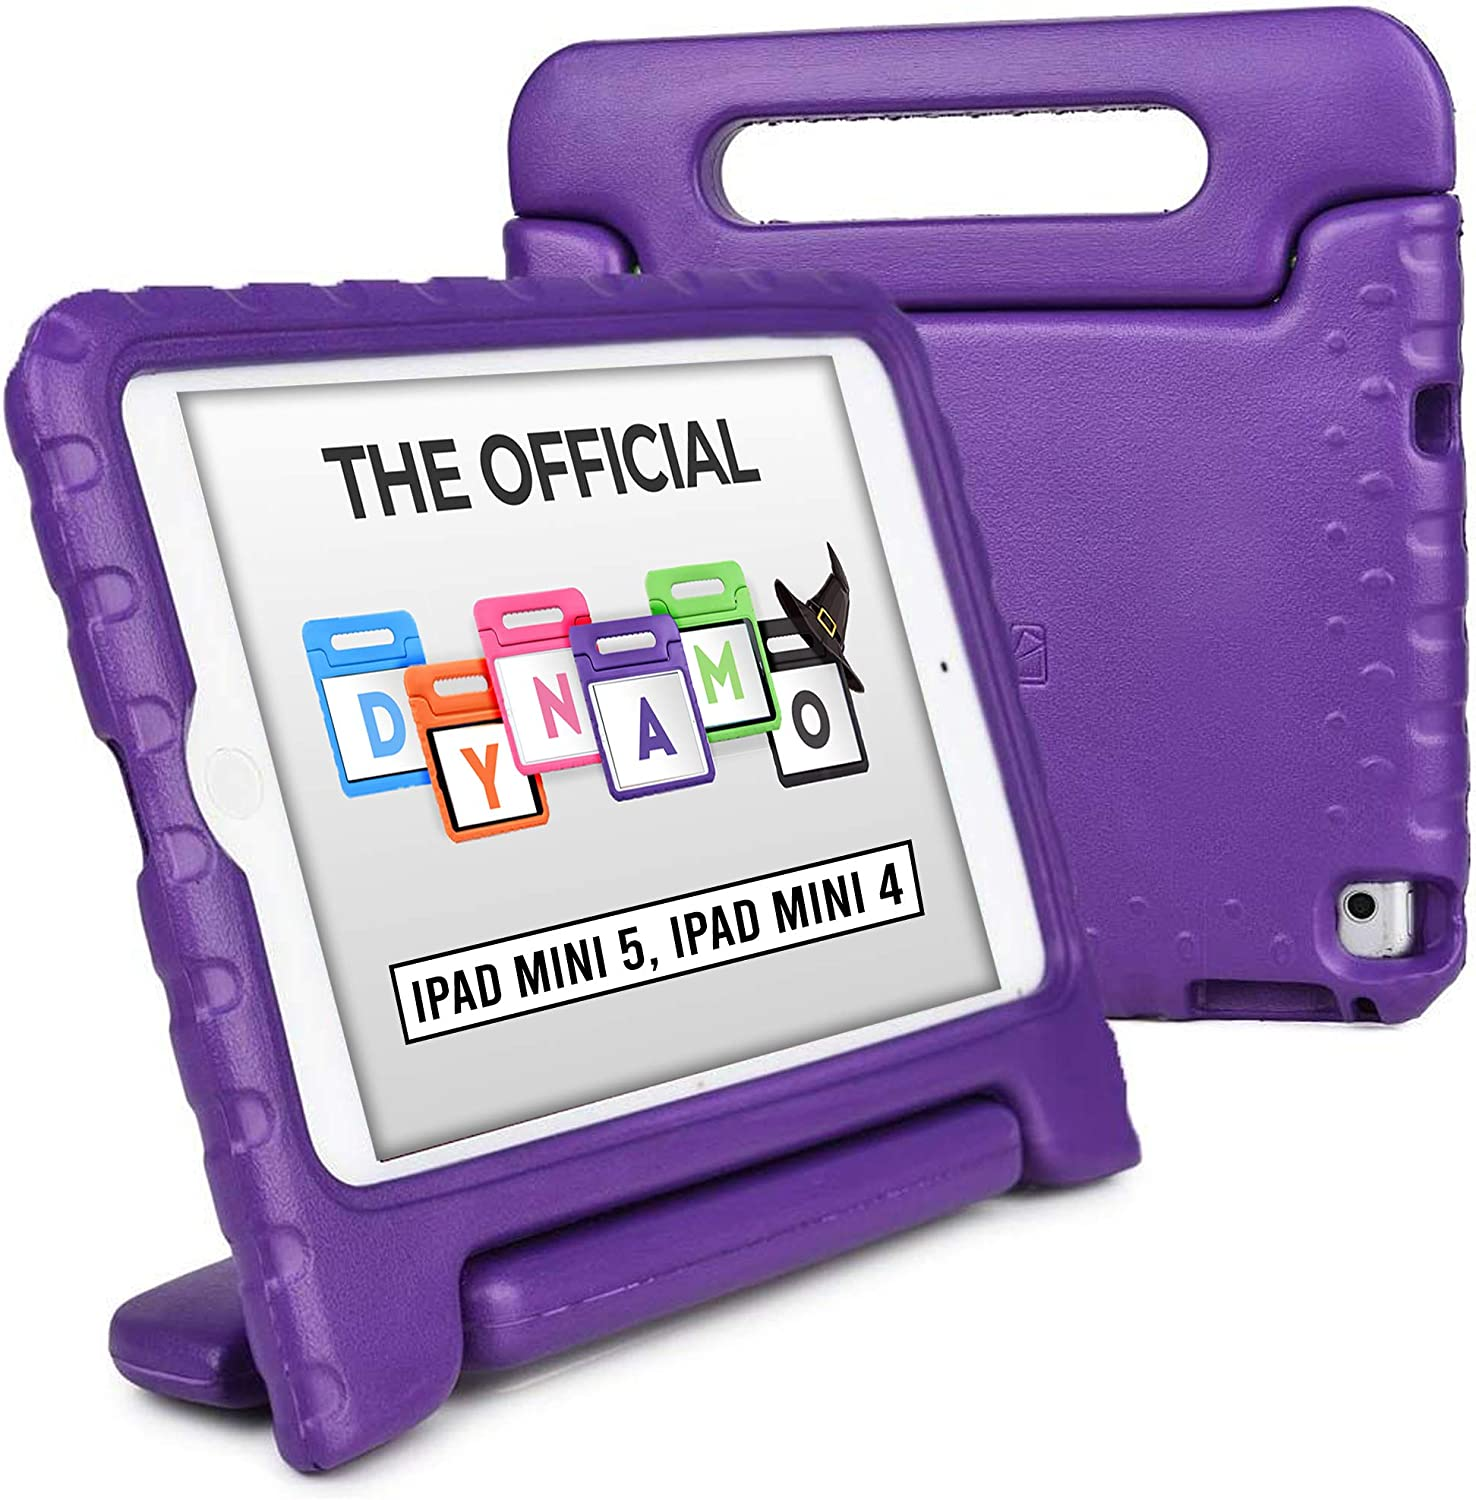 Cooper Dynamo [Rugged Kids Case] Protective Case for iPad Mini 5 4 | Child Proof Cover with Stand, Large Handle, Screen Protector (Purple)